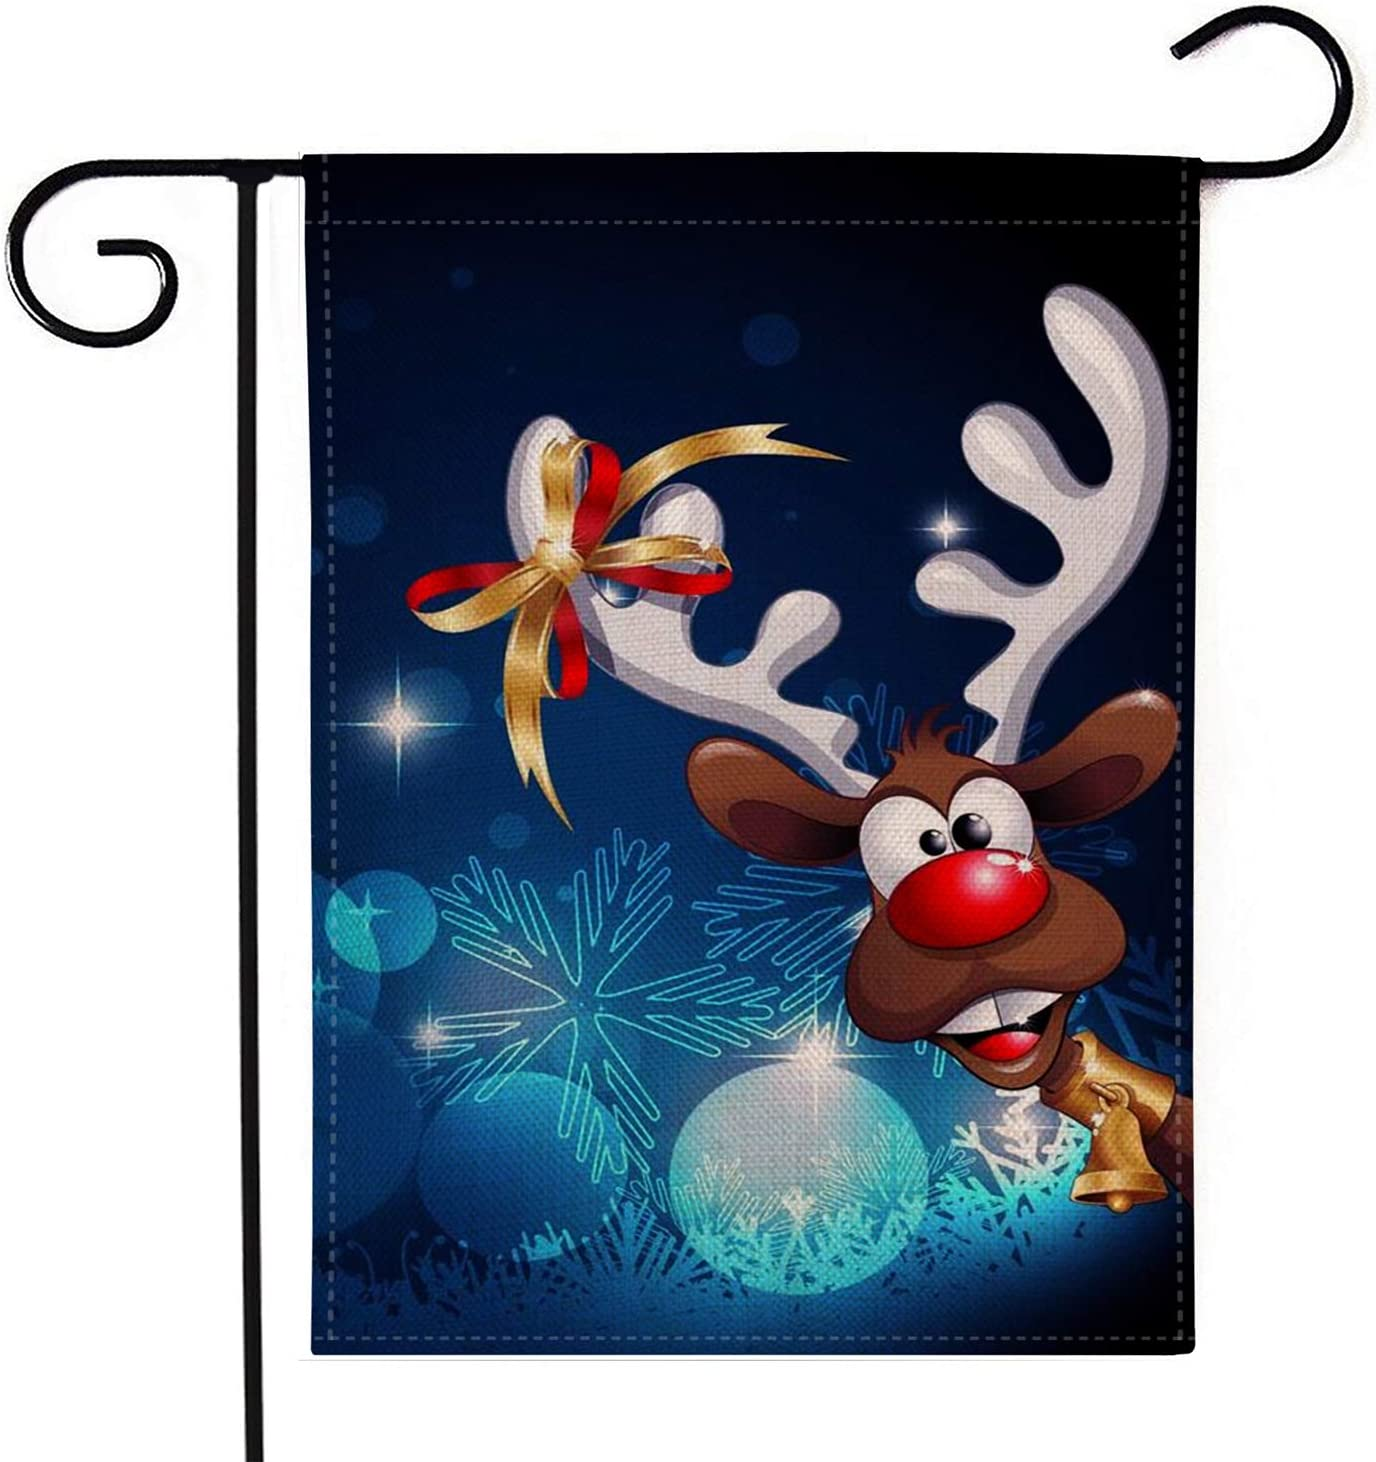 YINGXIANG Christmas Garden Flag Double Sided Flags Welcome Merry Christmas Flags Elk 12.5x18.5 Inches Winter Rustic Yard Signs Yard Outdoor Decorations